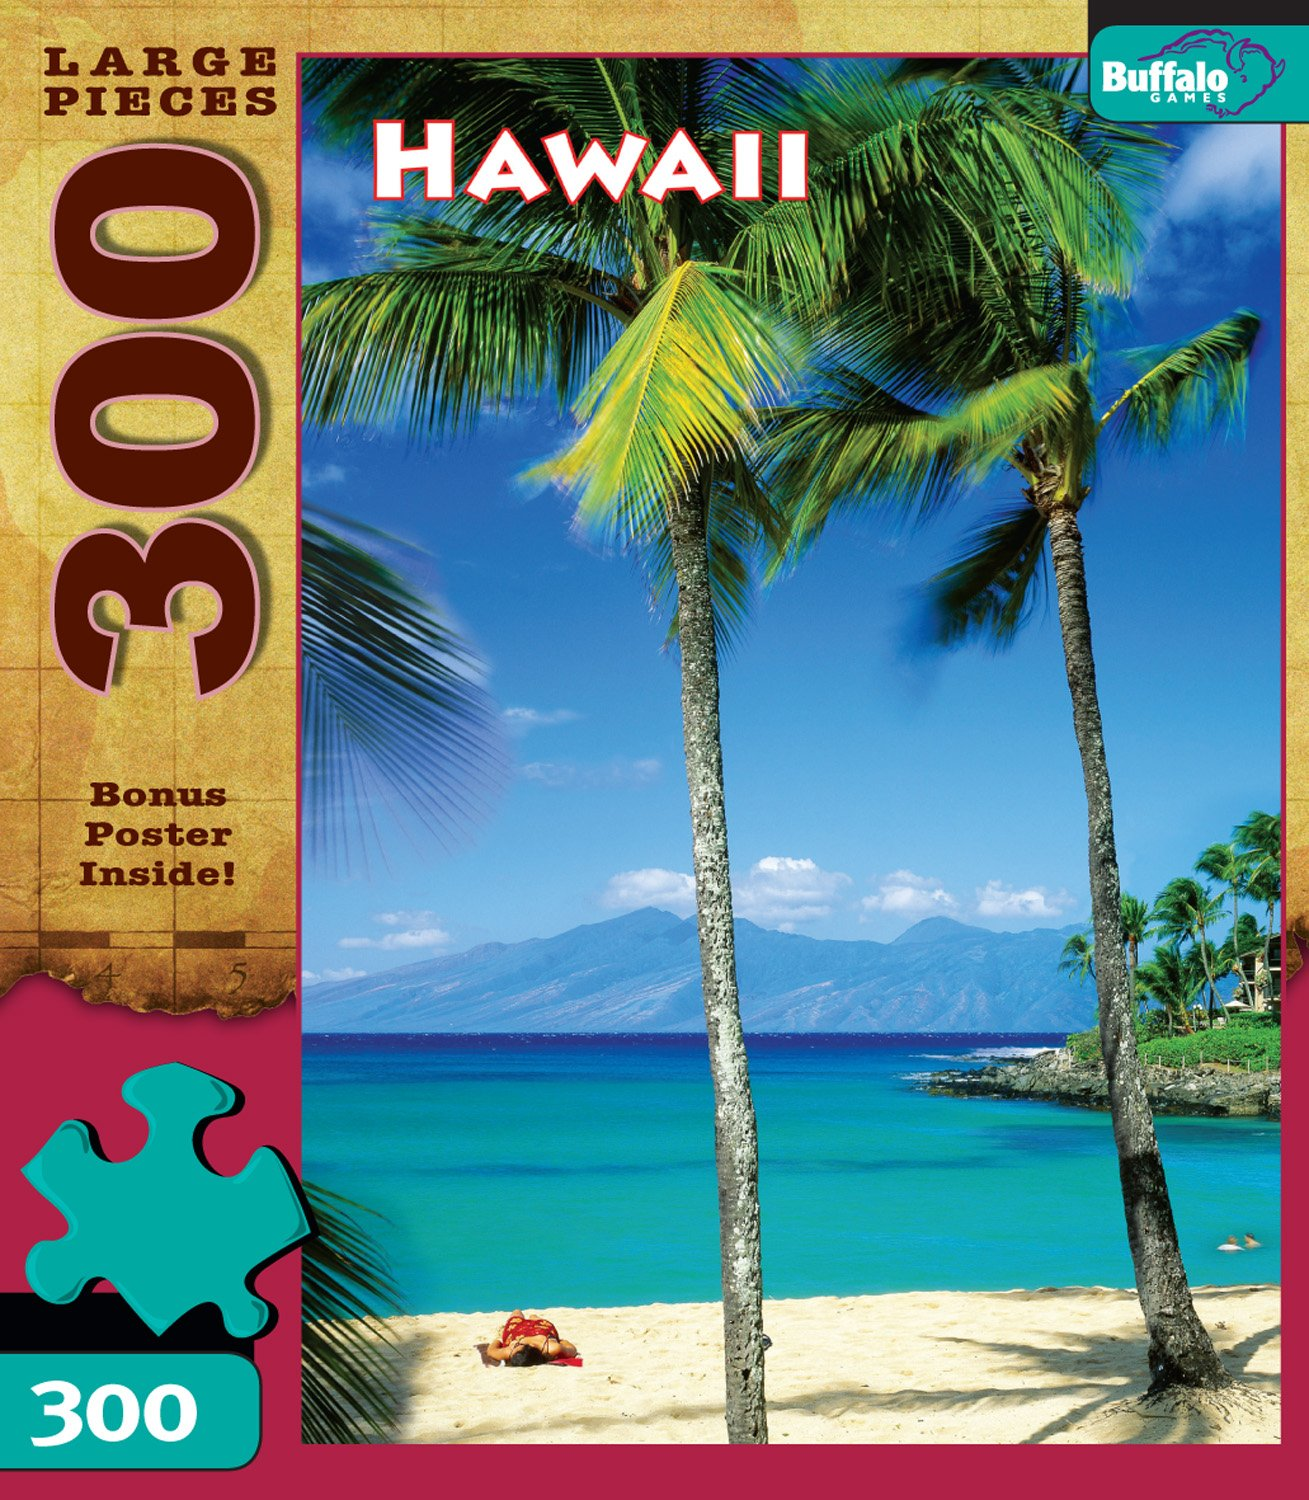 Travel: Hawaii Puzzle (300 Large Pieces) Game Box